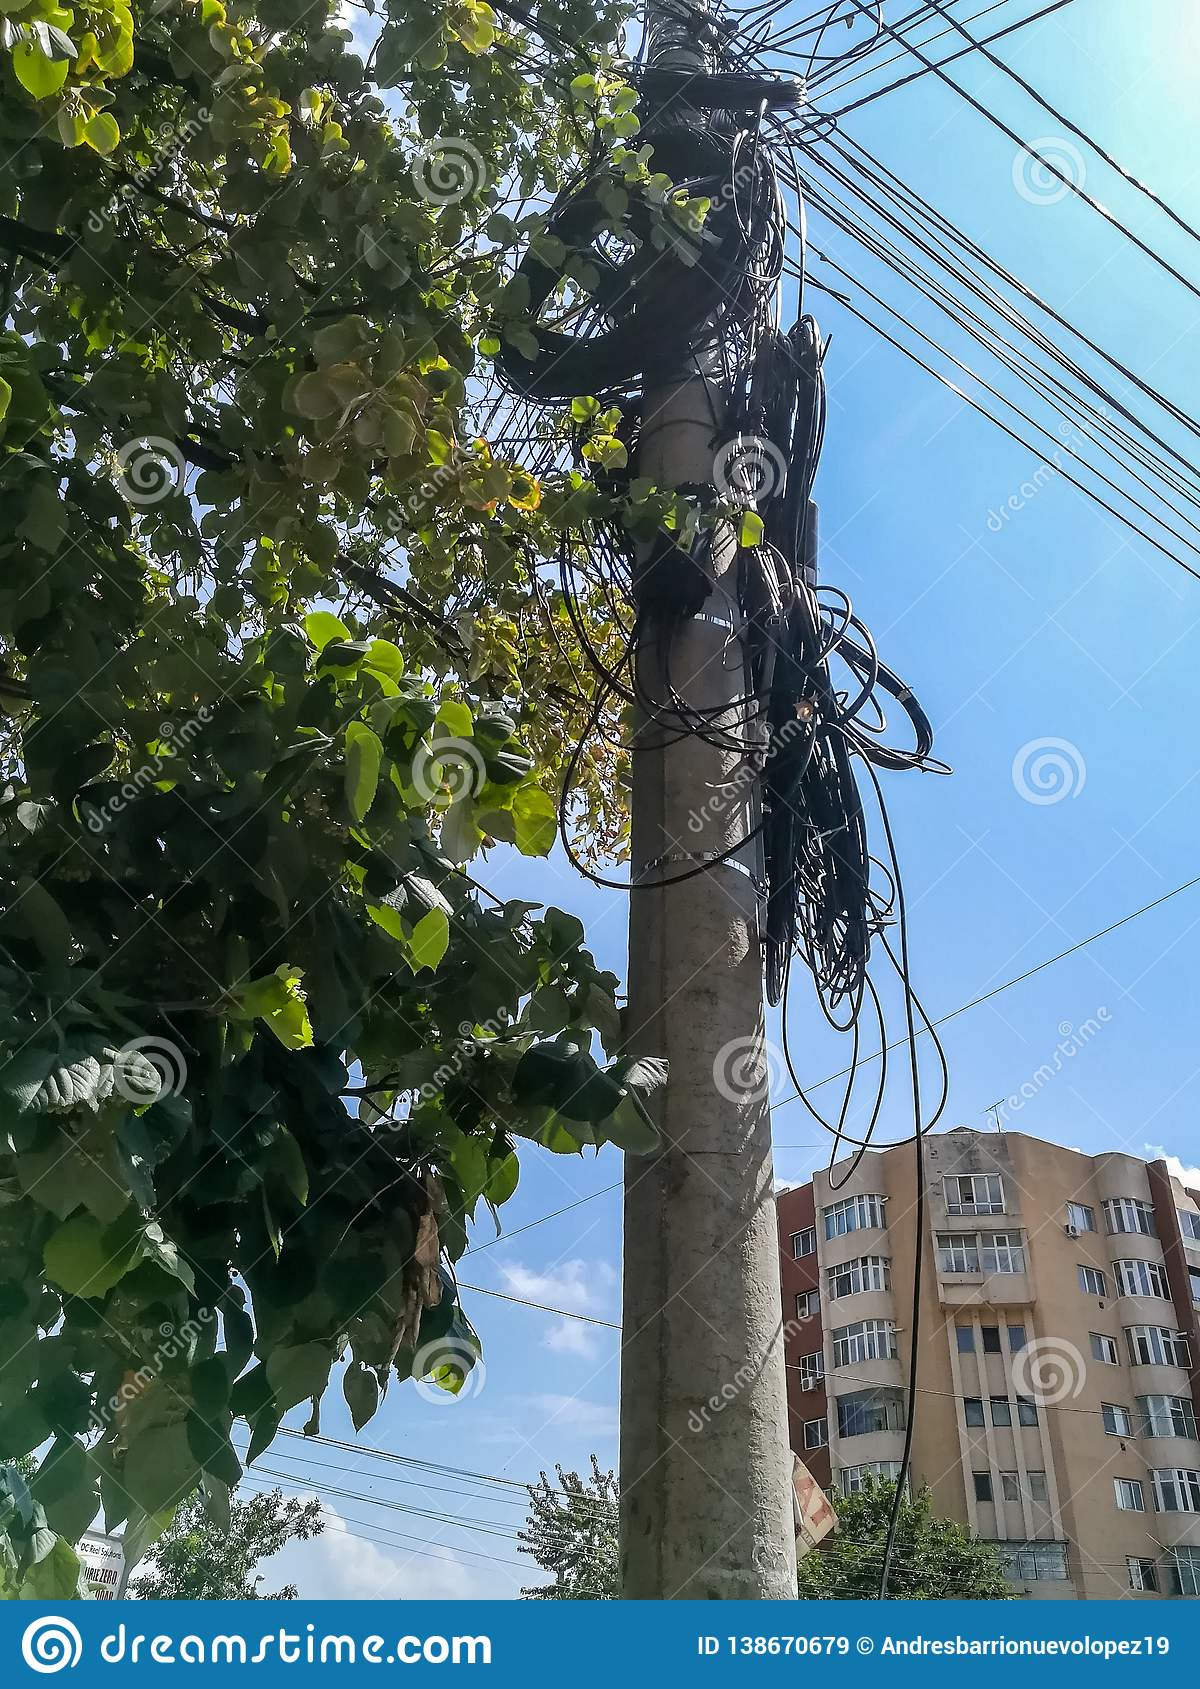 Pole of light with many cables in Buzau